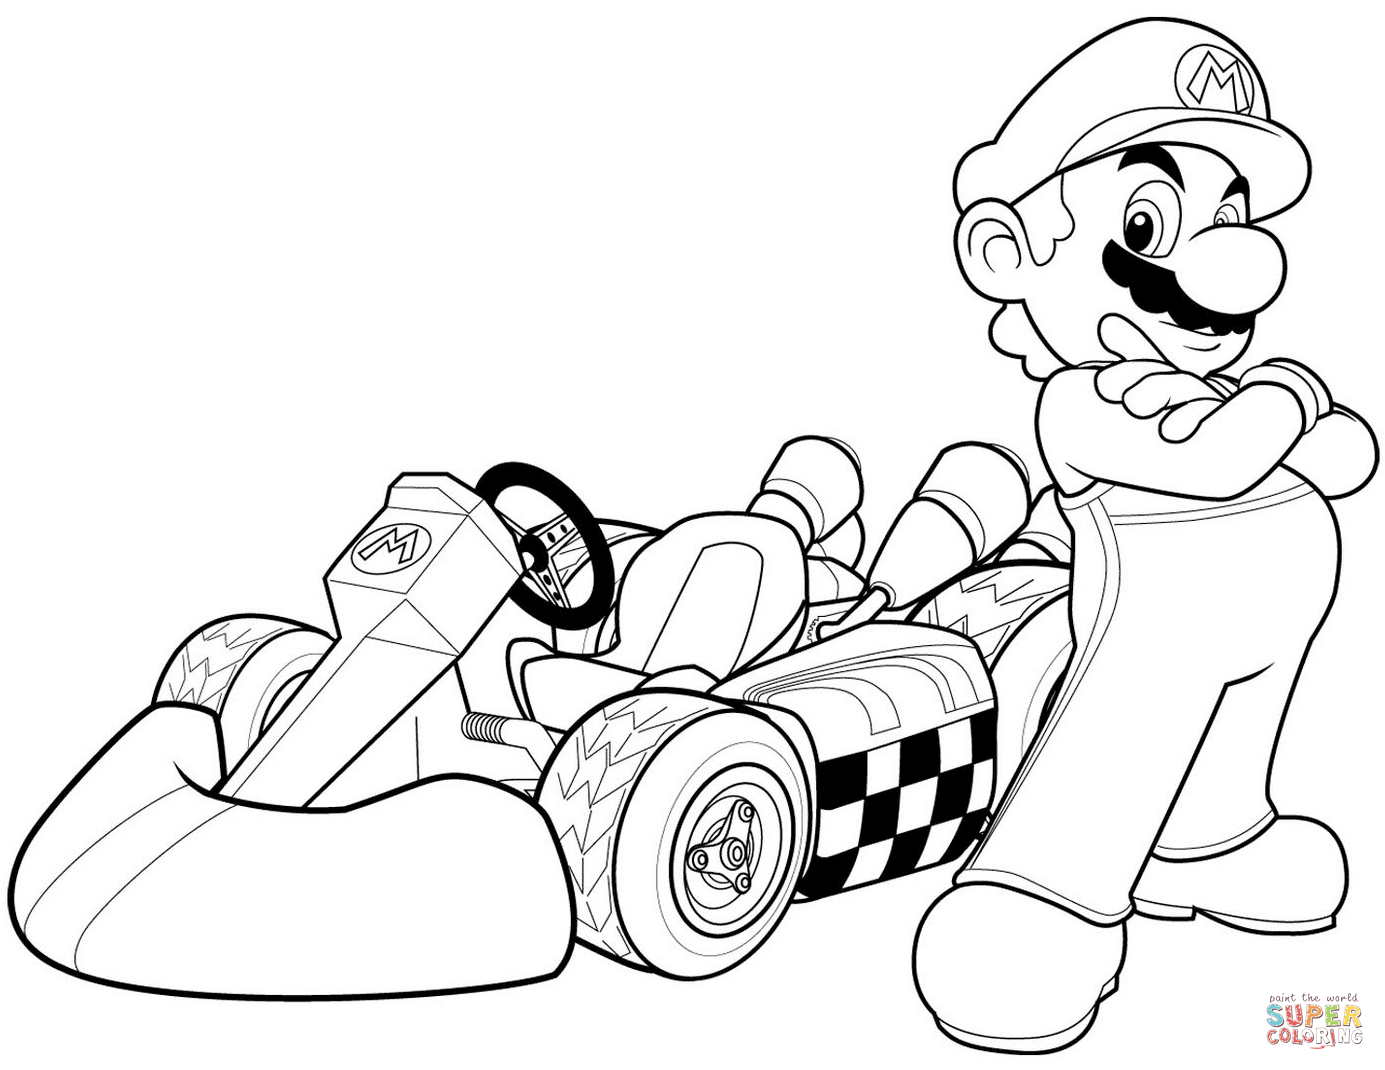 mario characters coloring pages super mario coloring pages wecoloringpage pinterest mice mario characters coloring pages